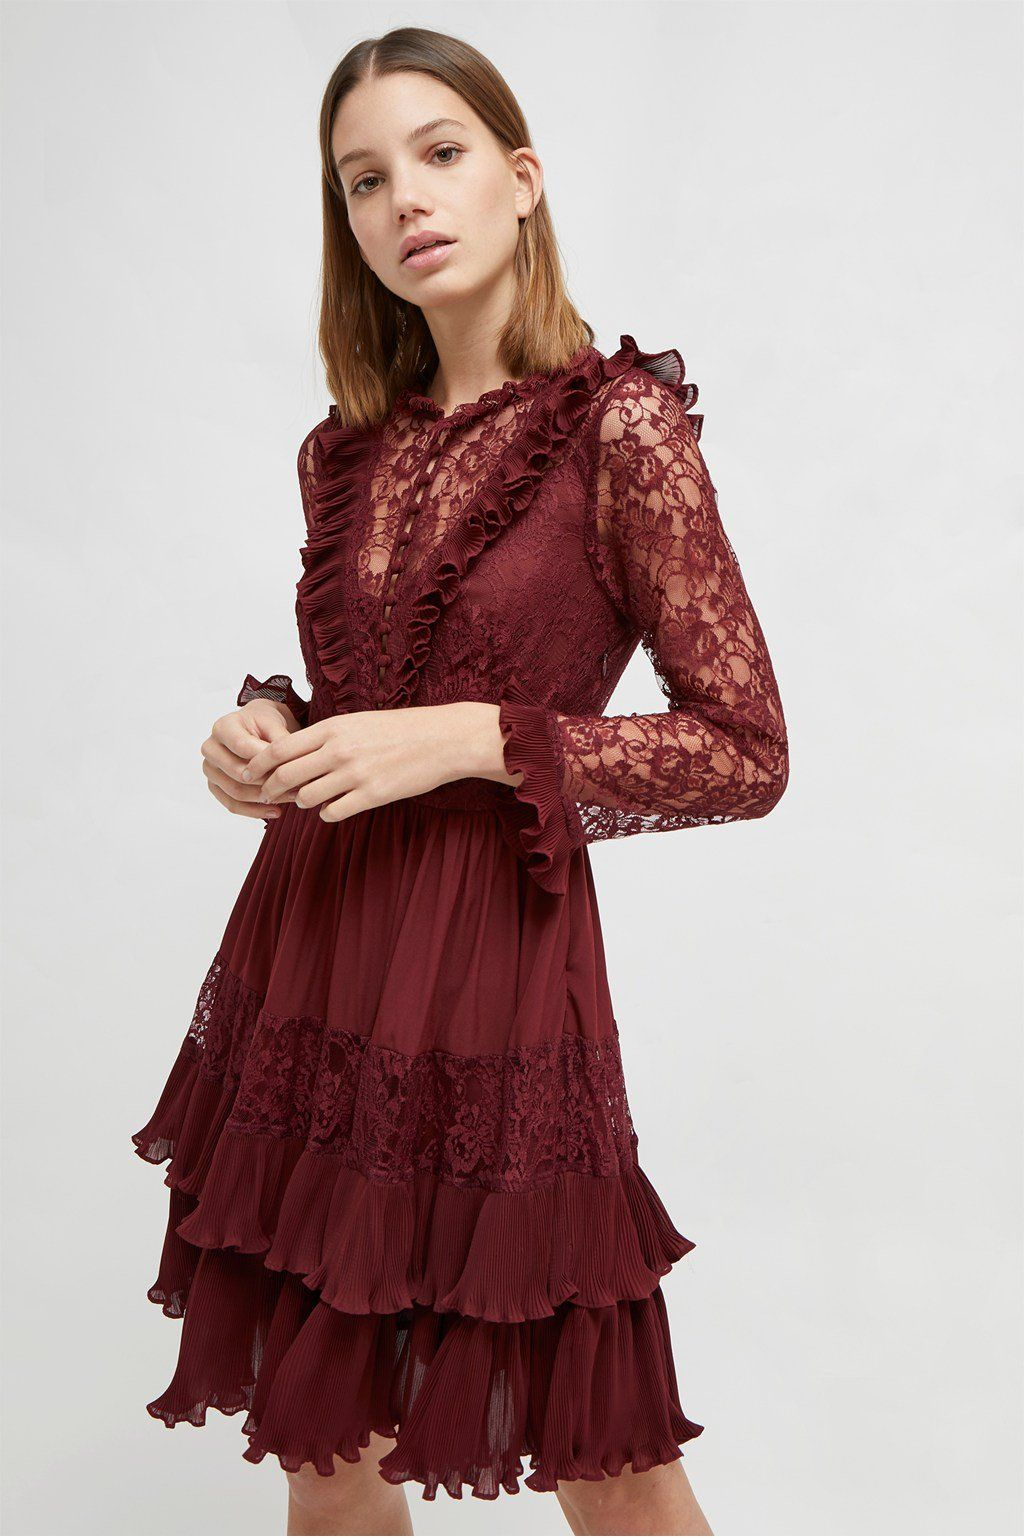 d4aed43cb87 Clandre Vintage Lace Mix Dress in 2019